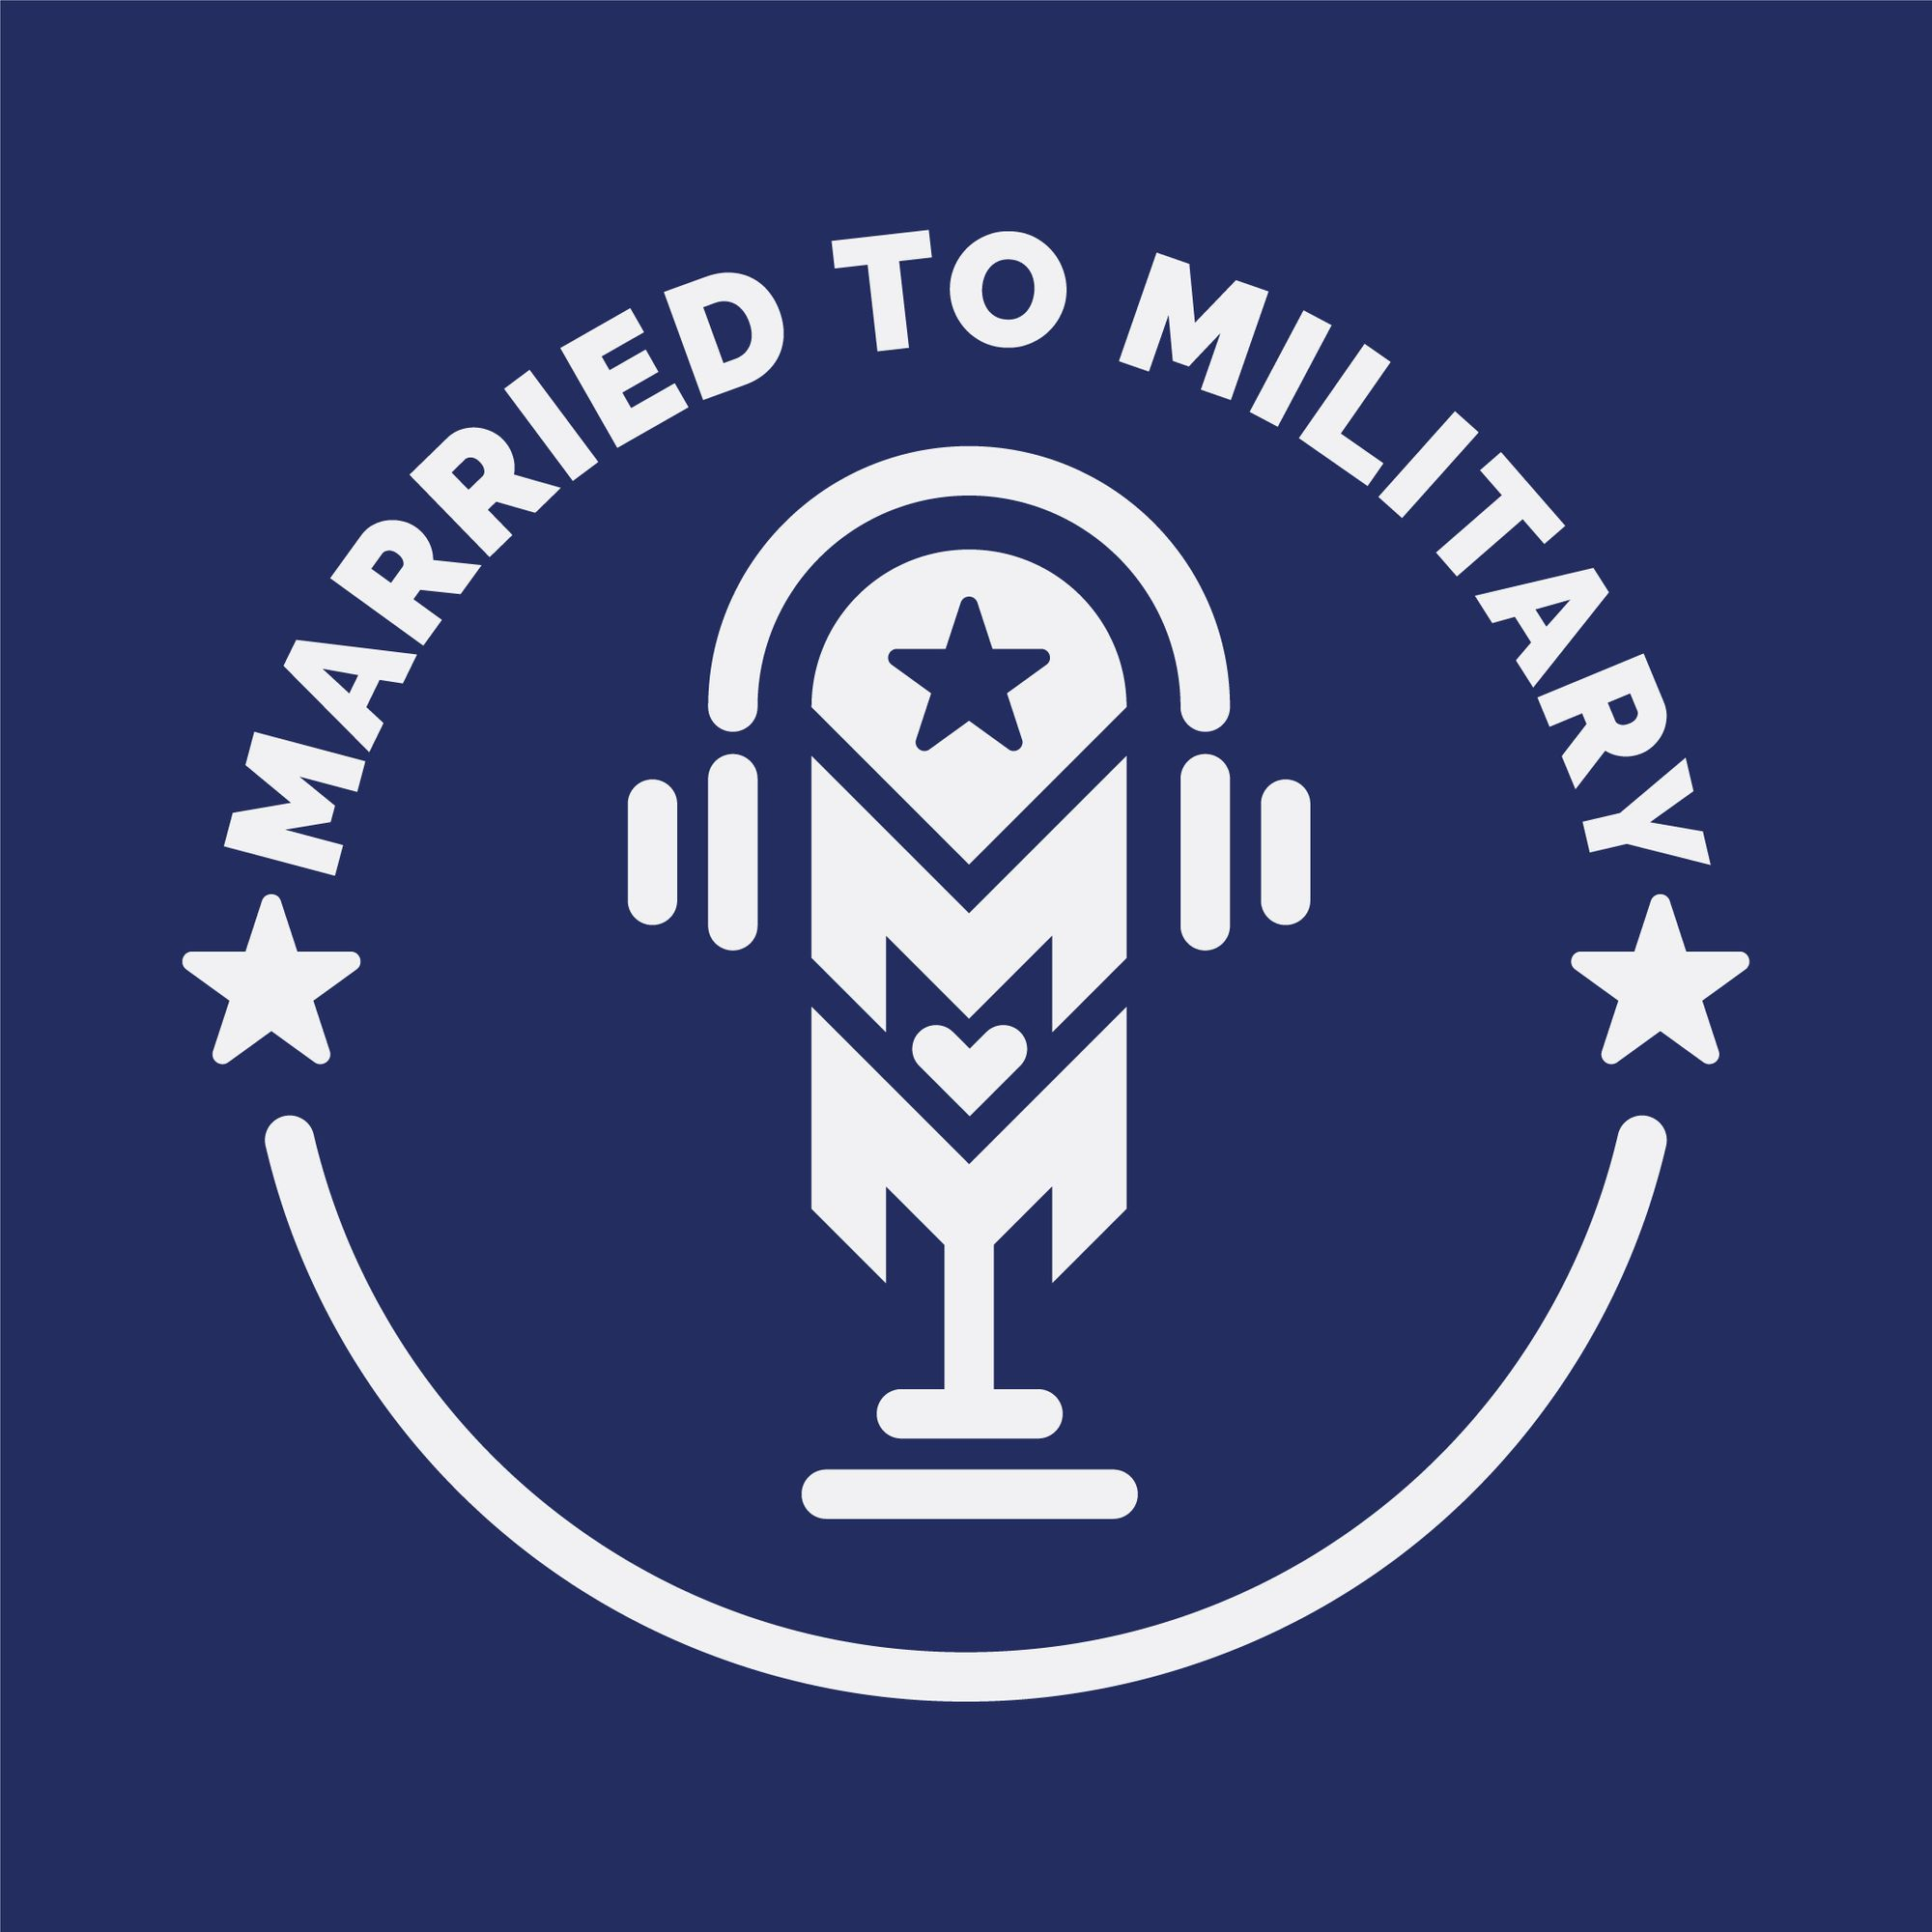 #GoSoloStories: Married to Military